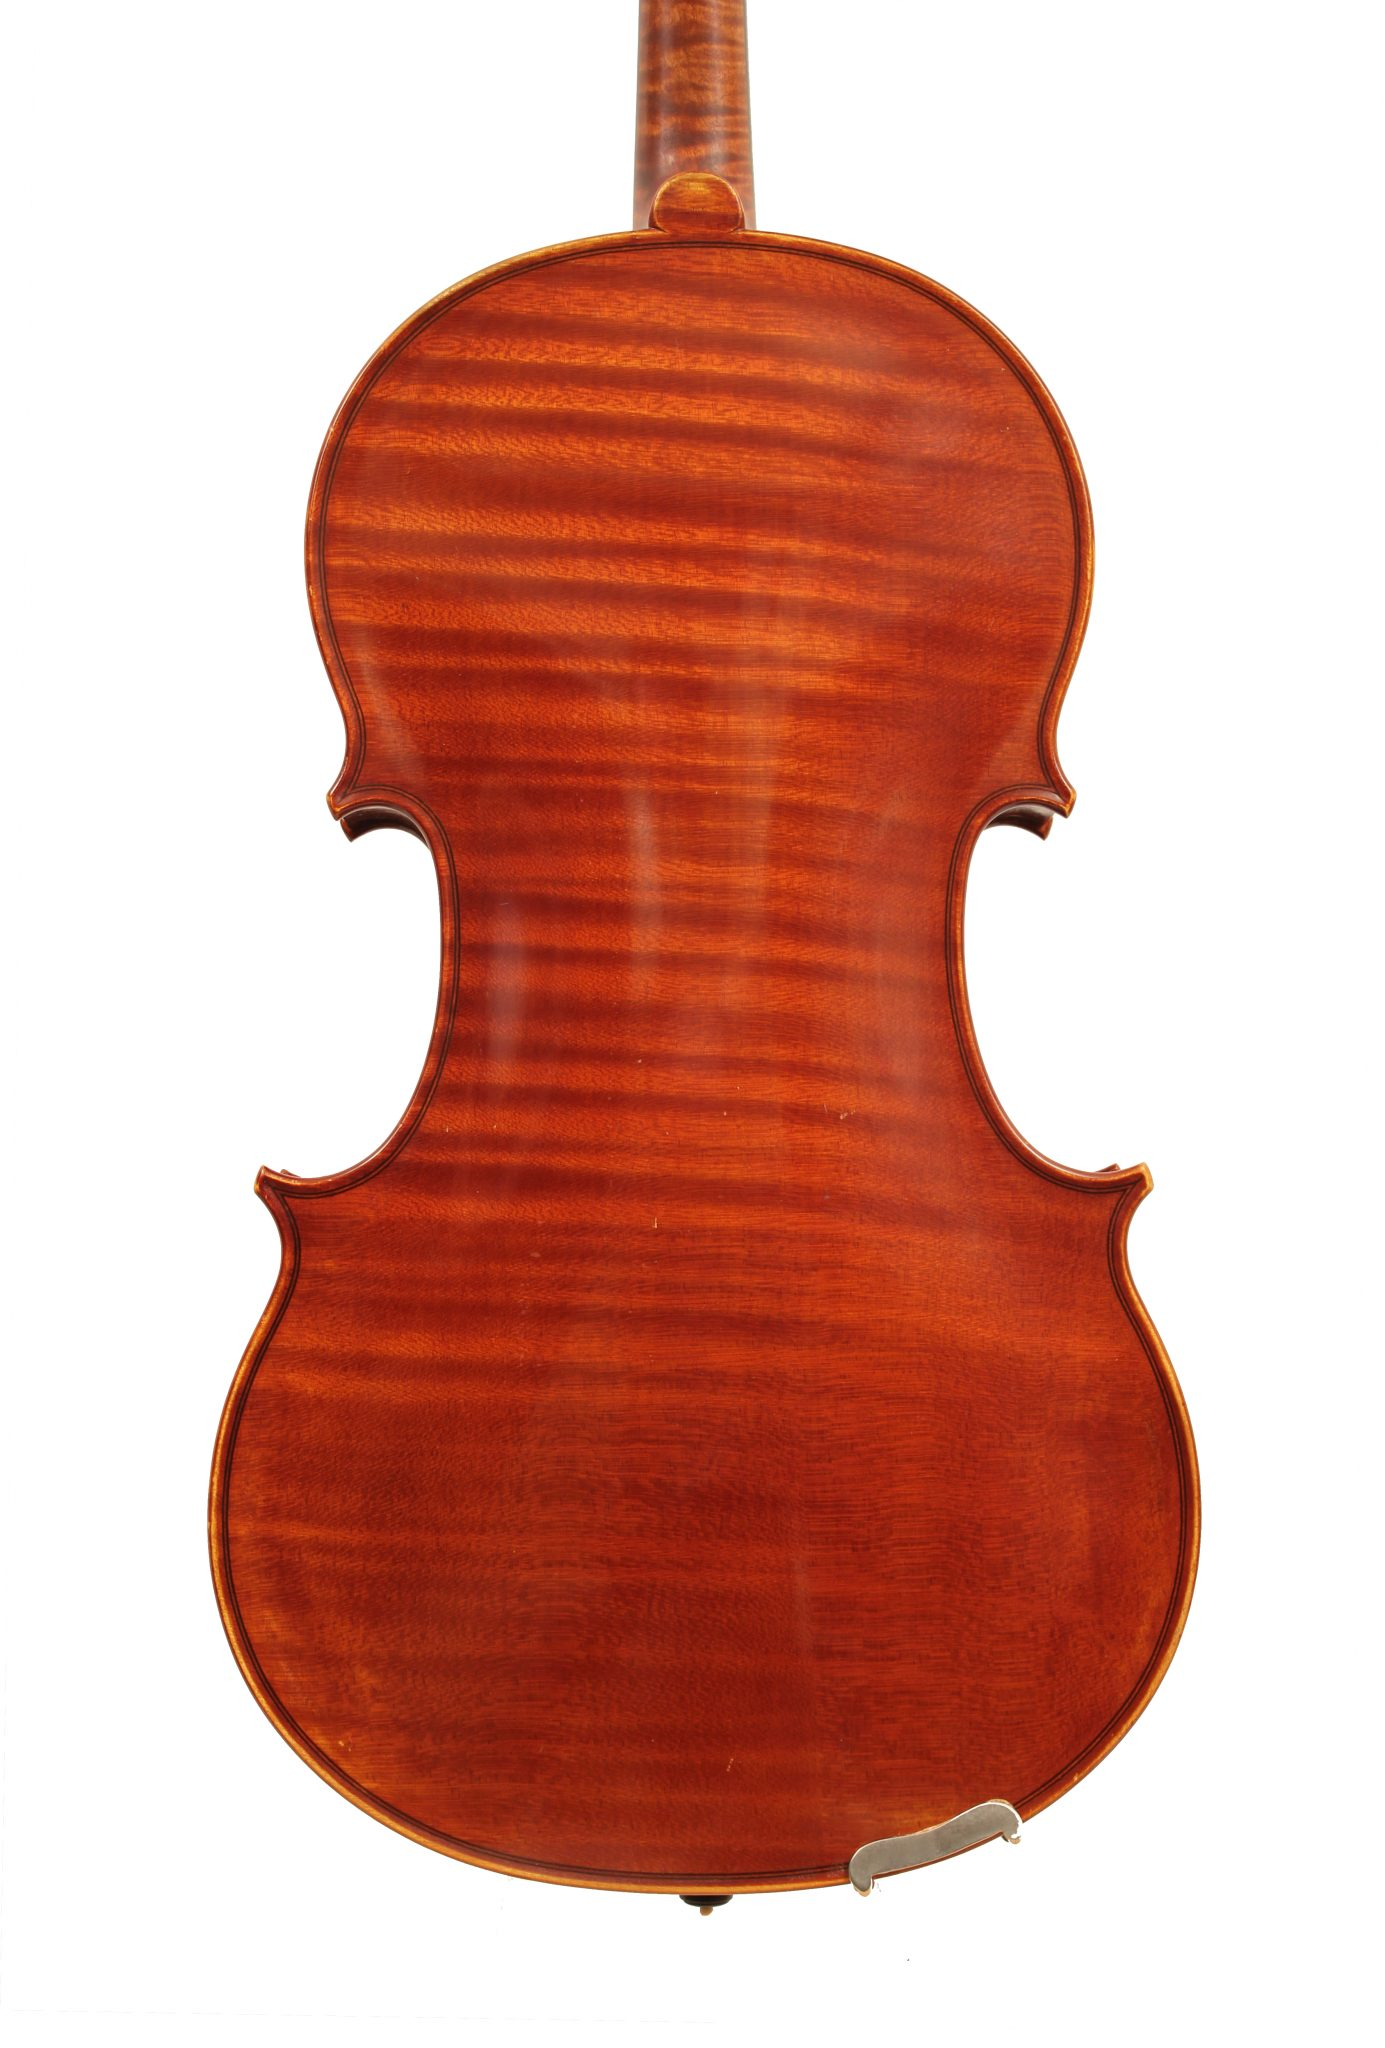 Viola by Alfons Pisters 1989 for sale at Bridgewood and Neitzert London